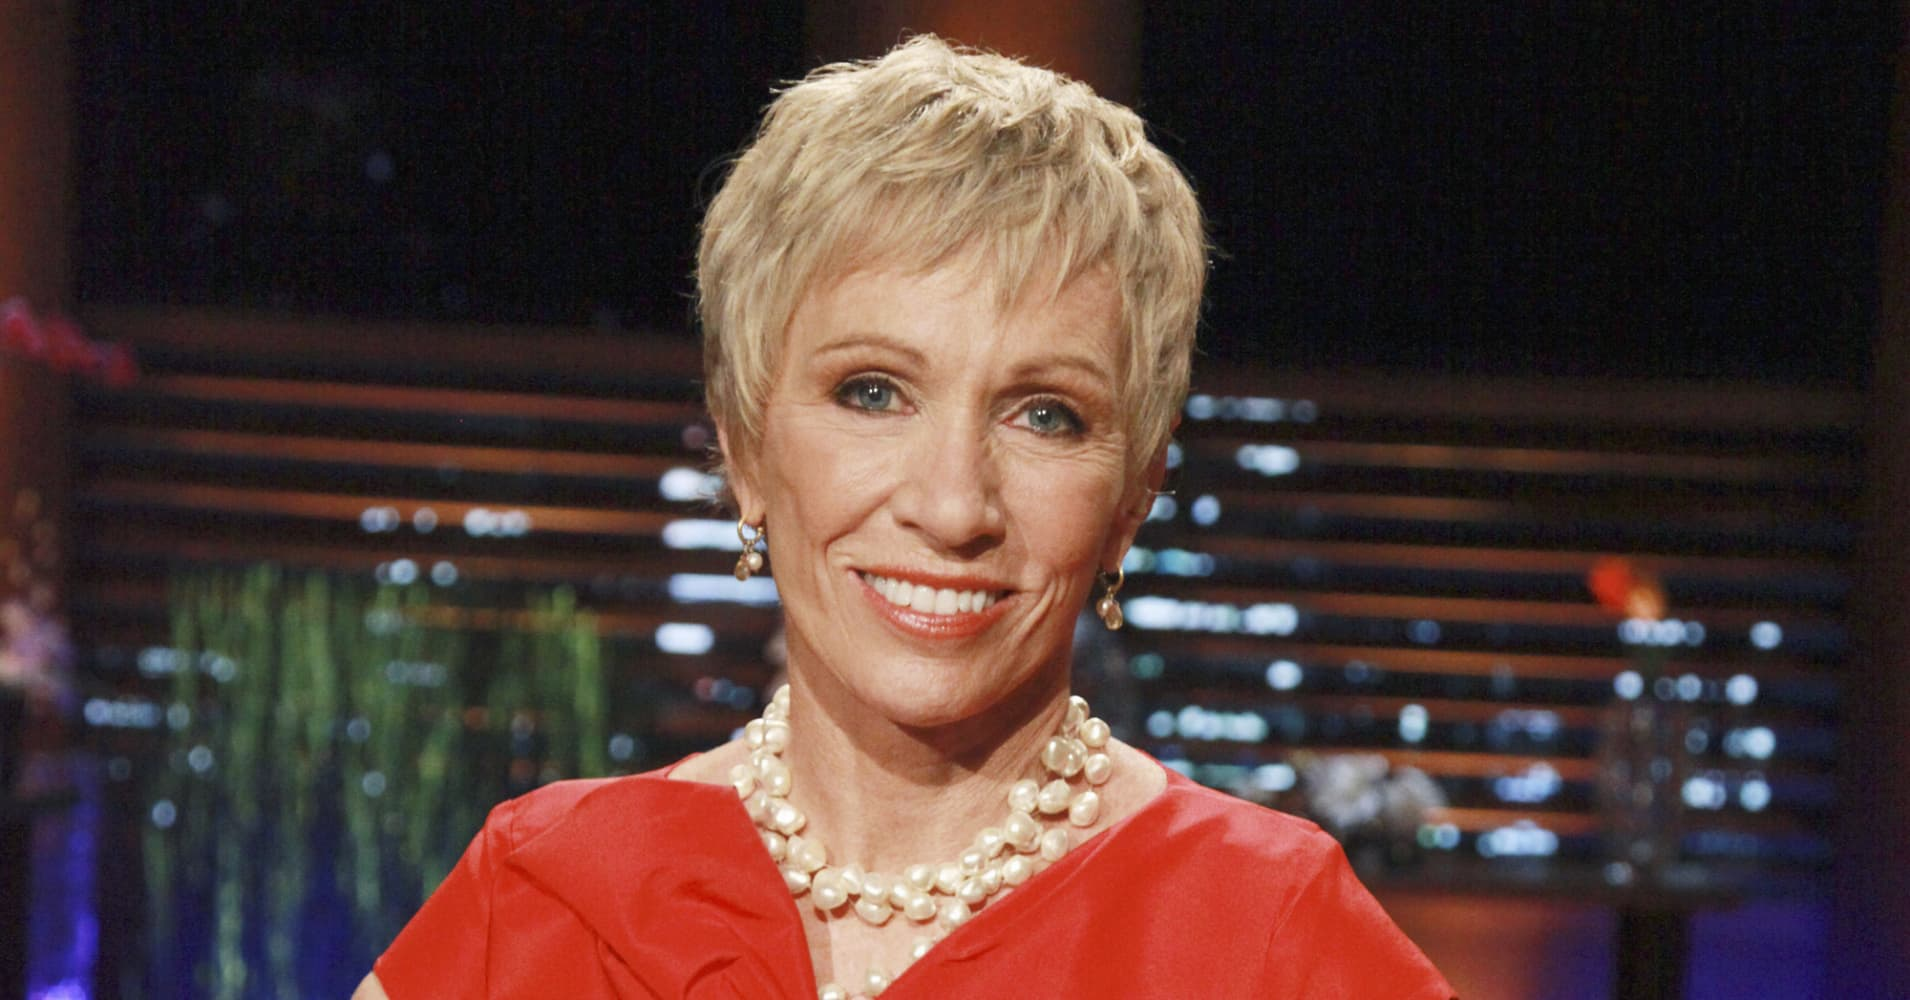 Image results for barbara corcoran